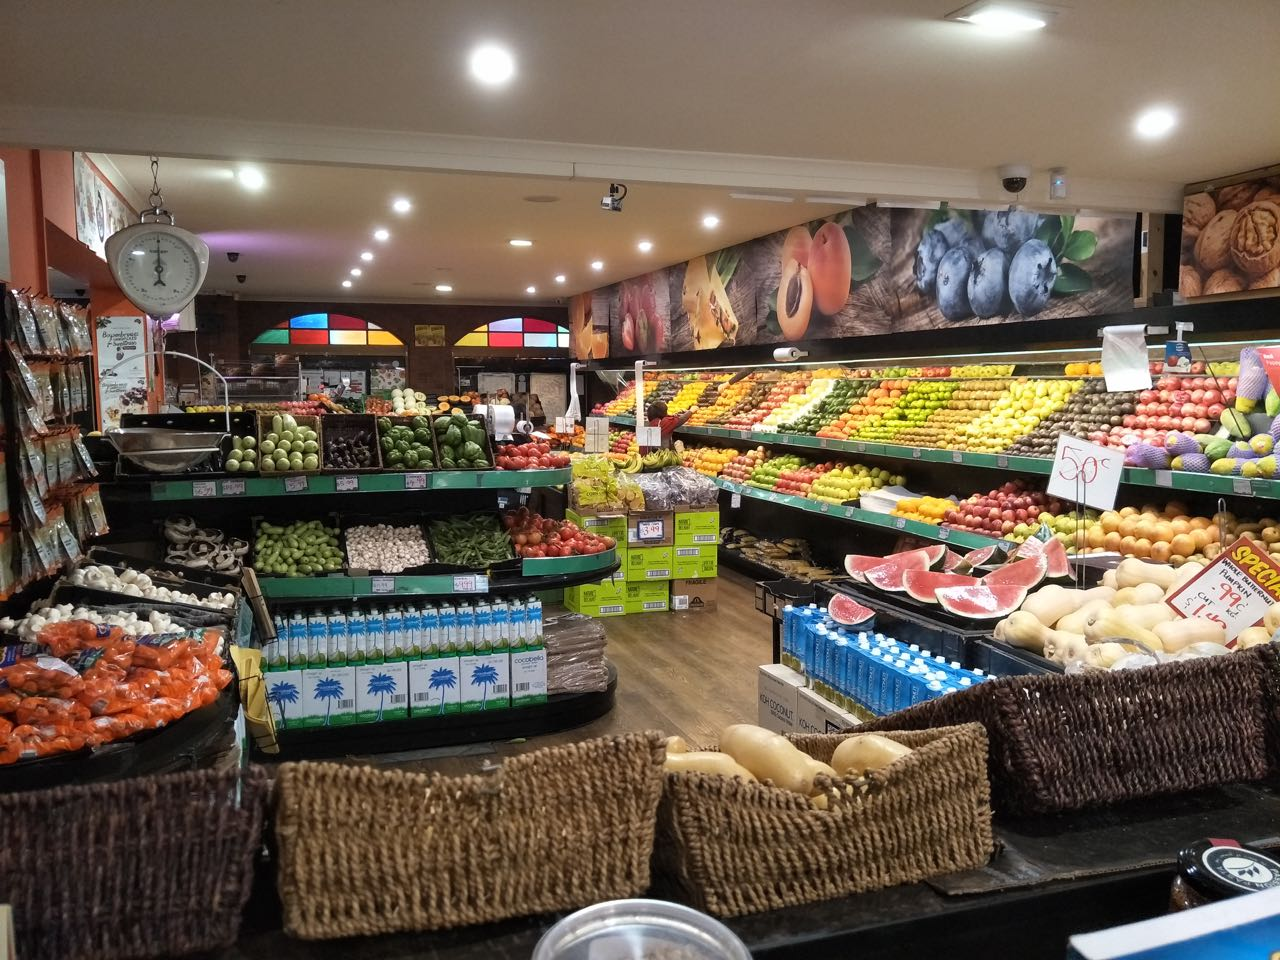 Very busy Fruit and Veg Shop for sale, Great Doncaster east location